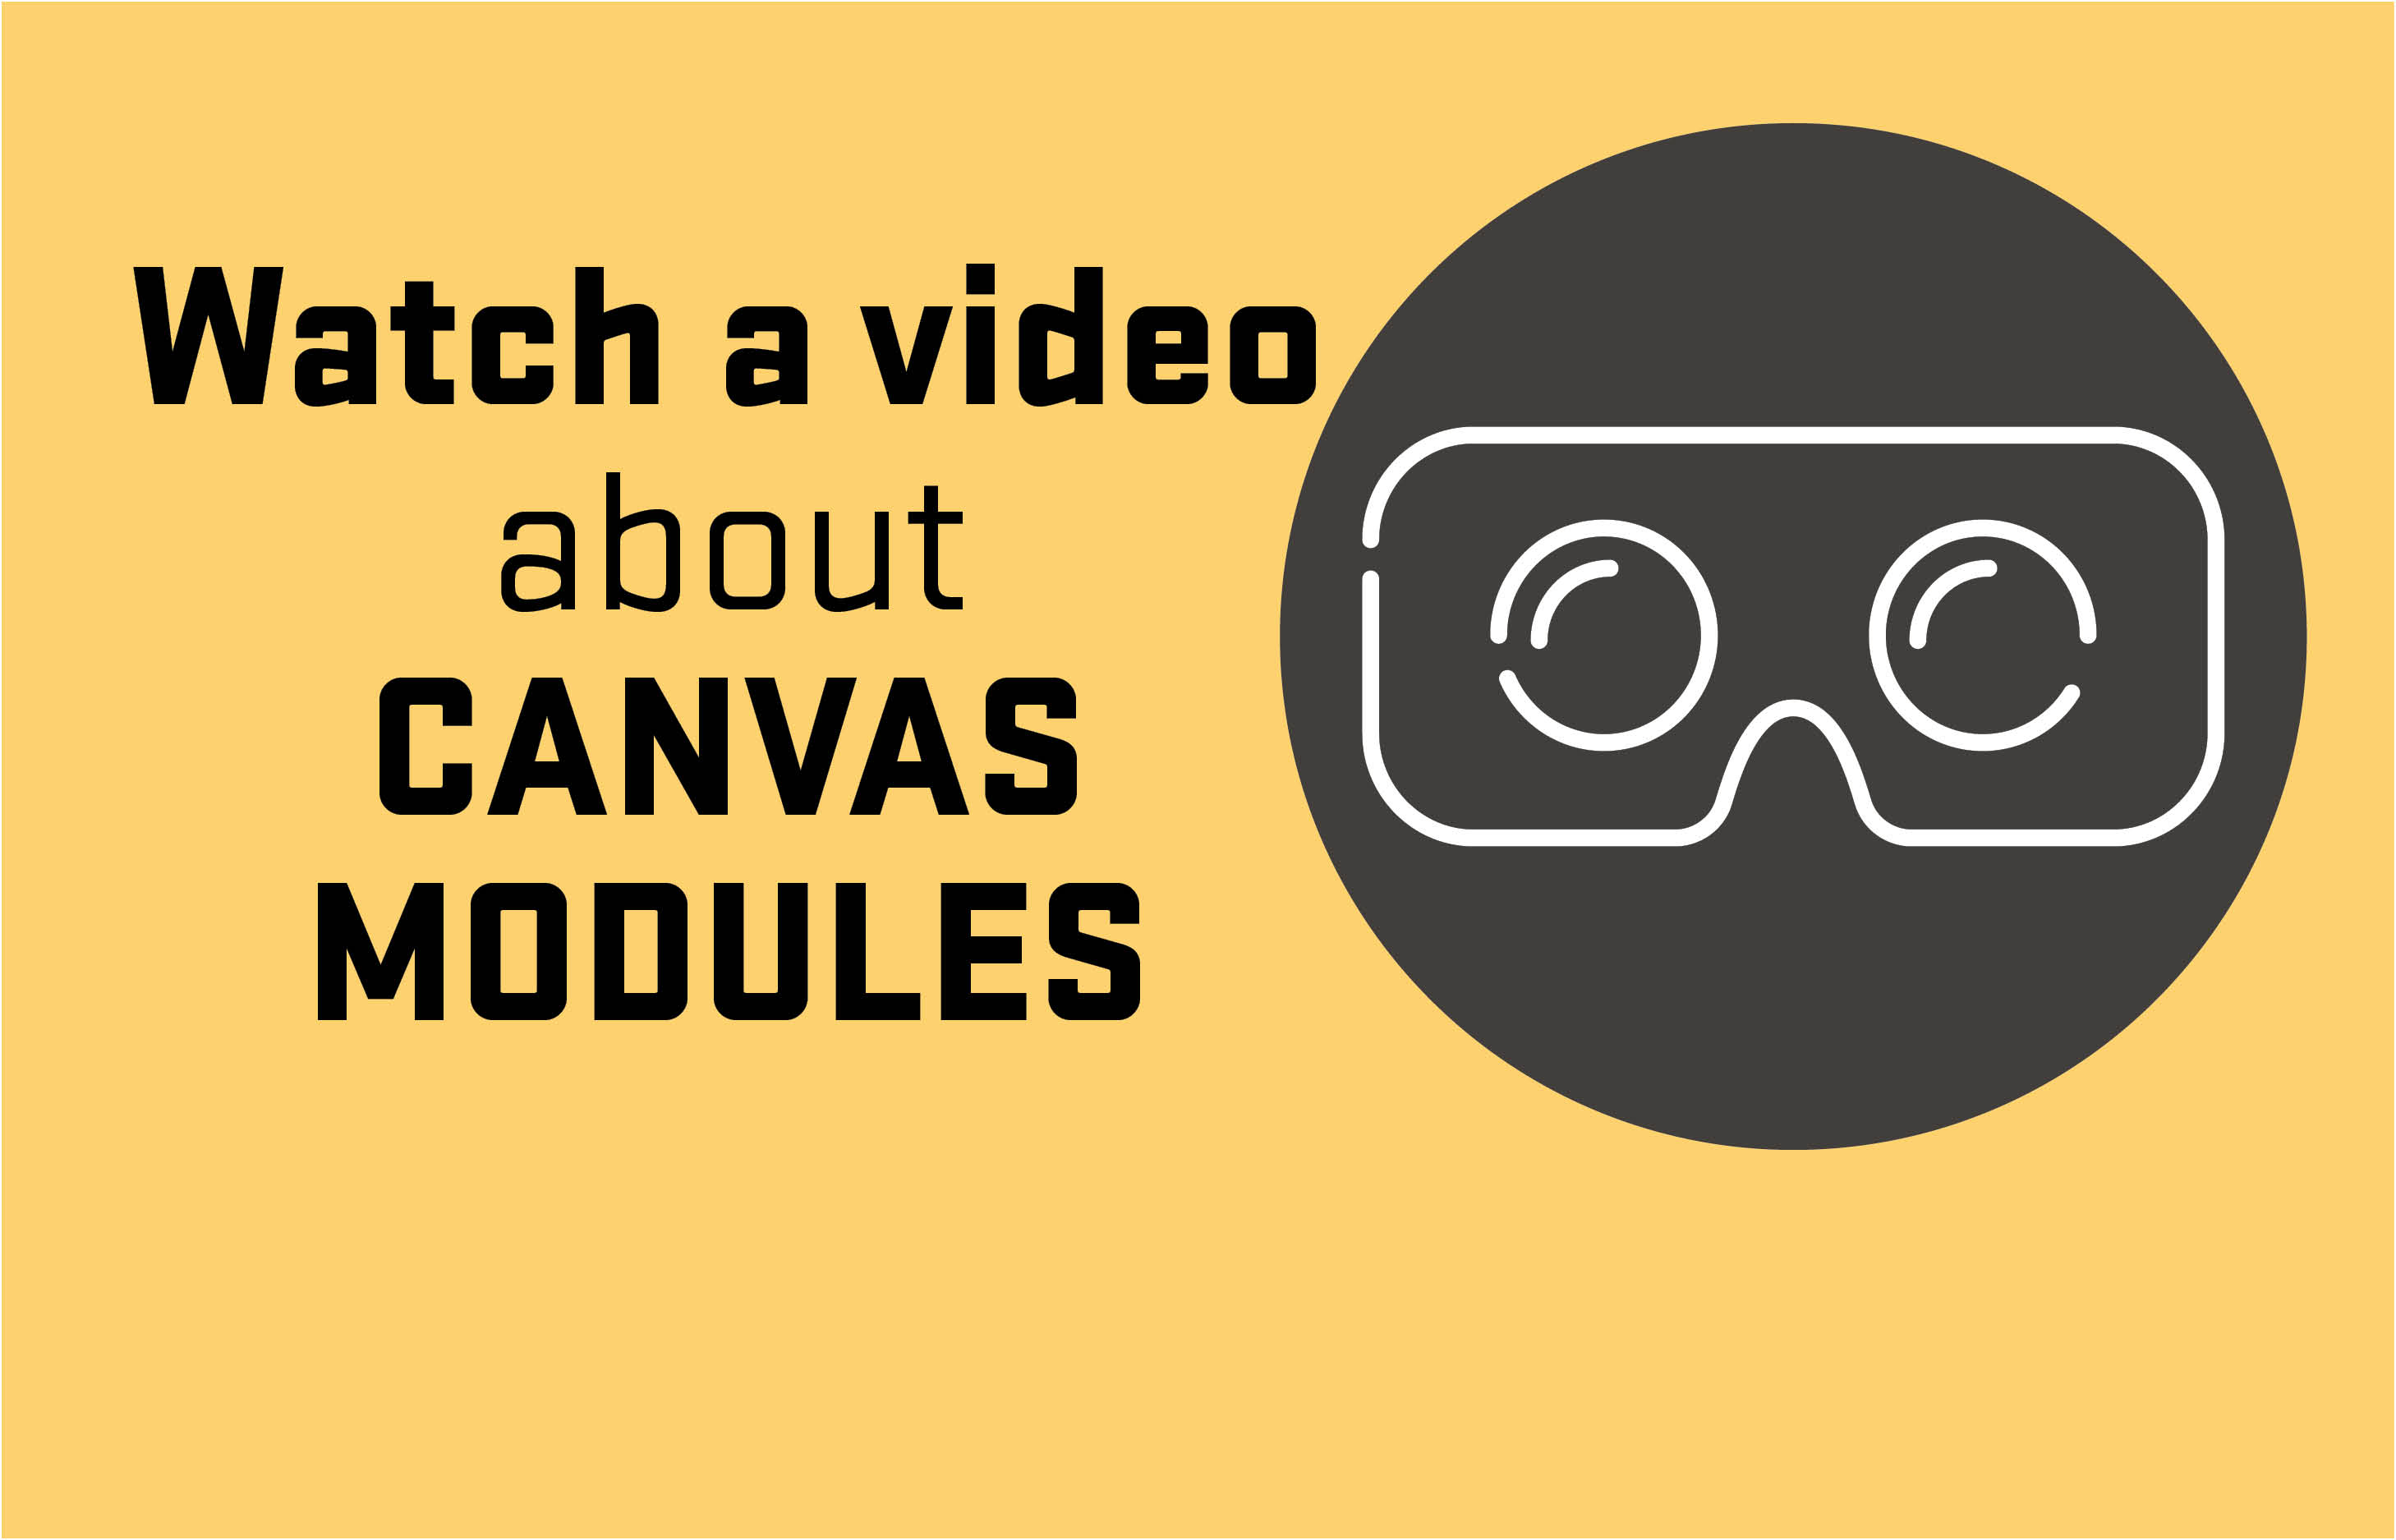 Watch a video about Canvas Modules